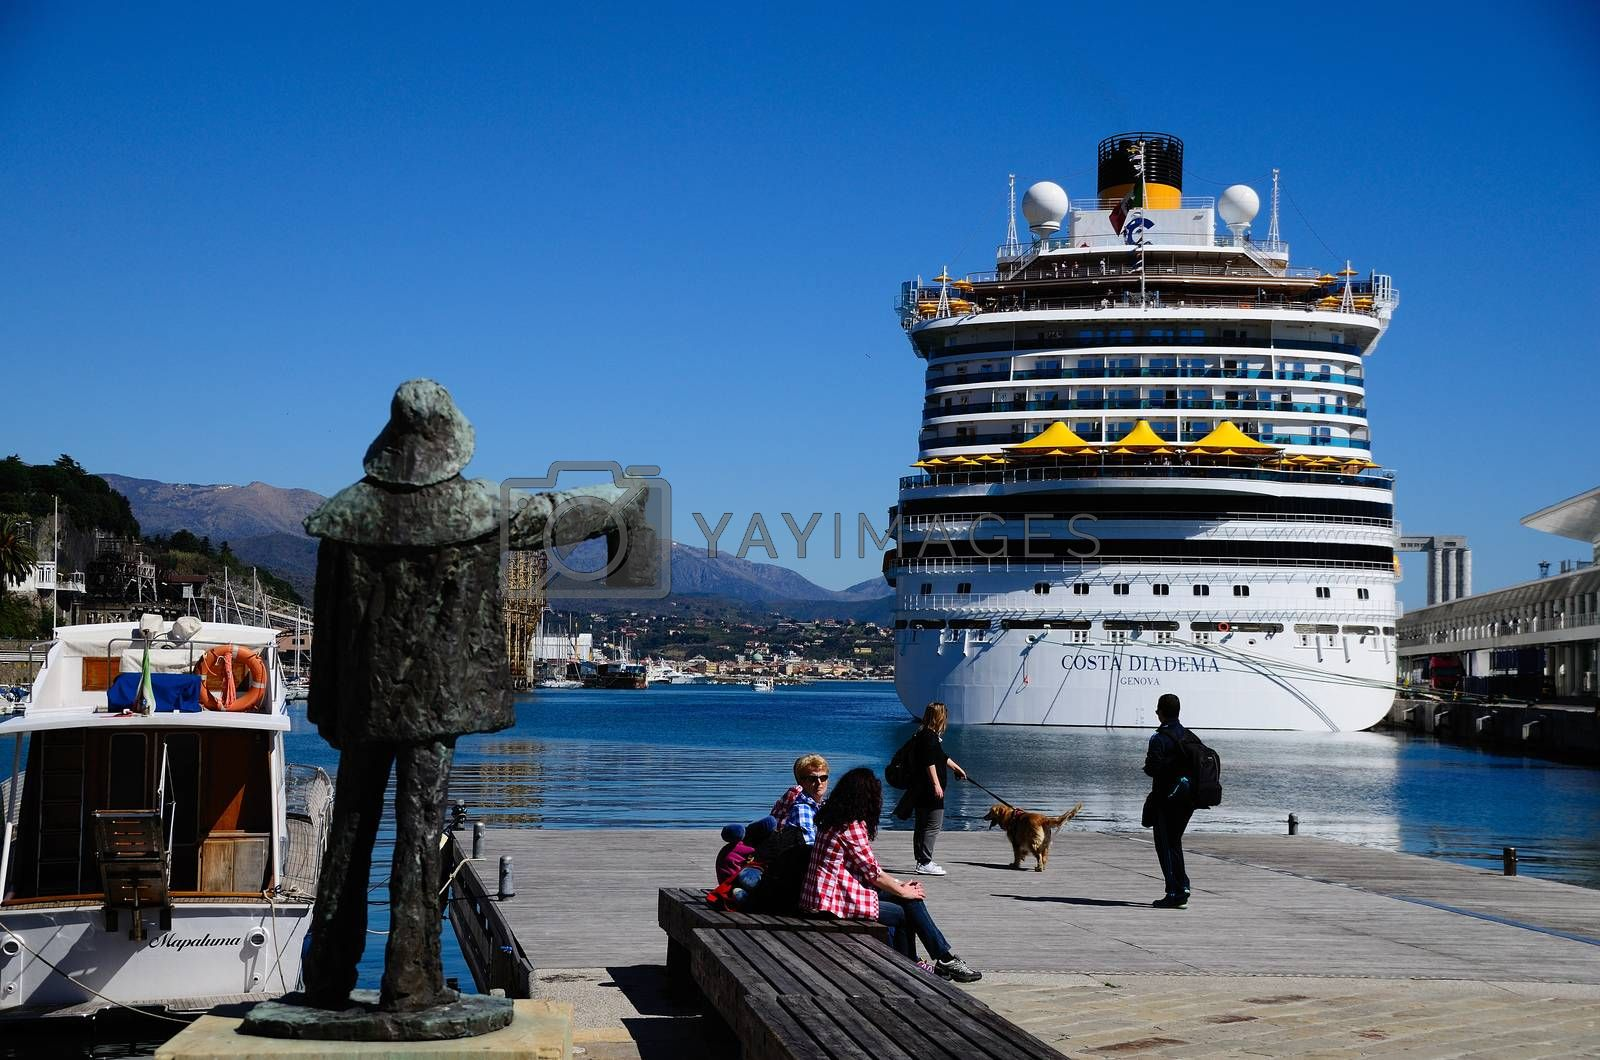 huge cruise ship in the port of Savona